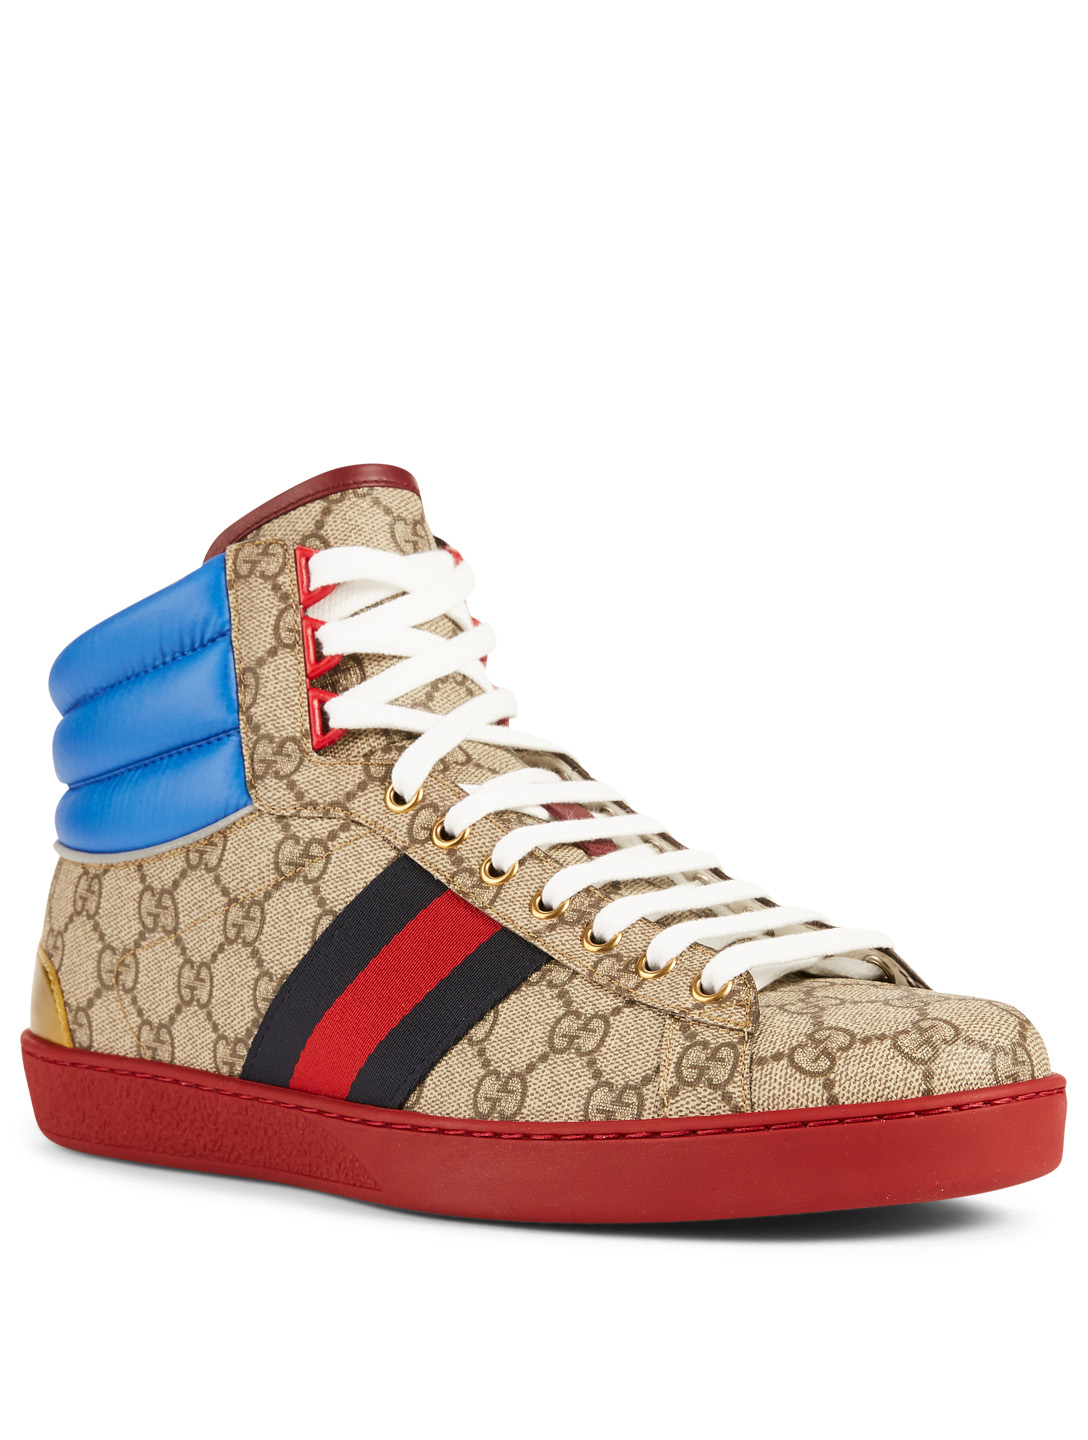 217c1d4eb3c ... GUCCI Ace GG Supreme High-Top Sneakers Designers Neutral ...